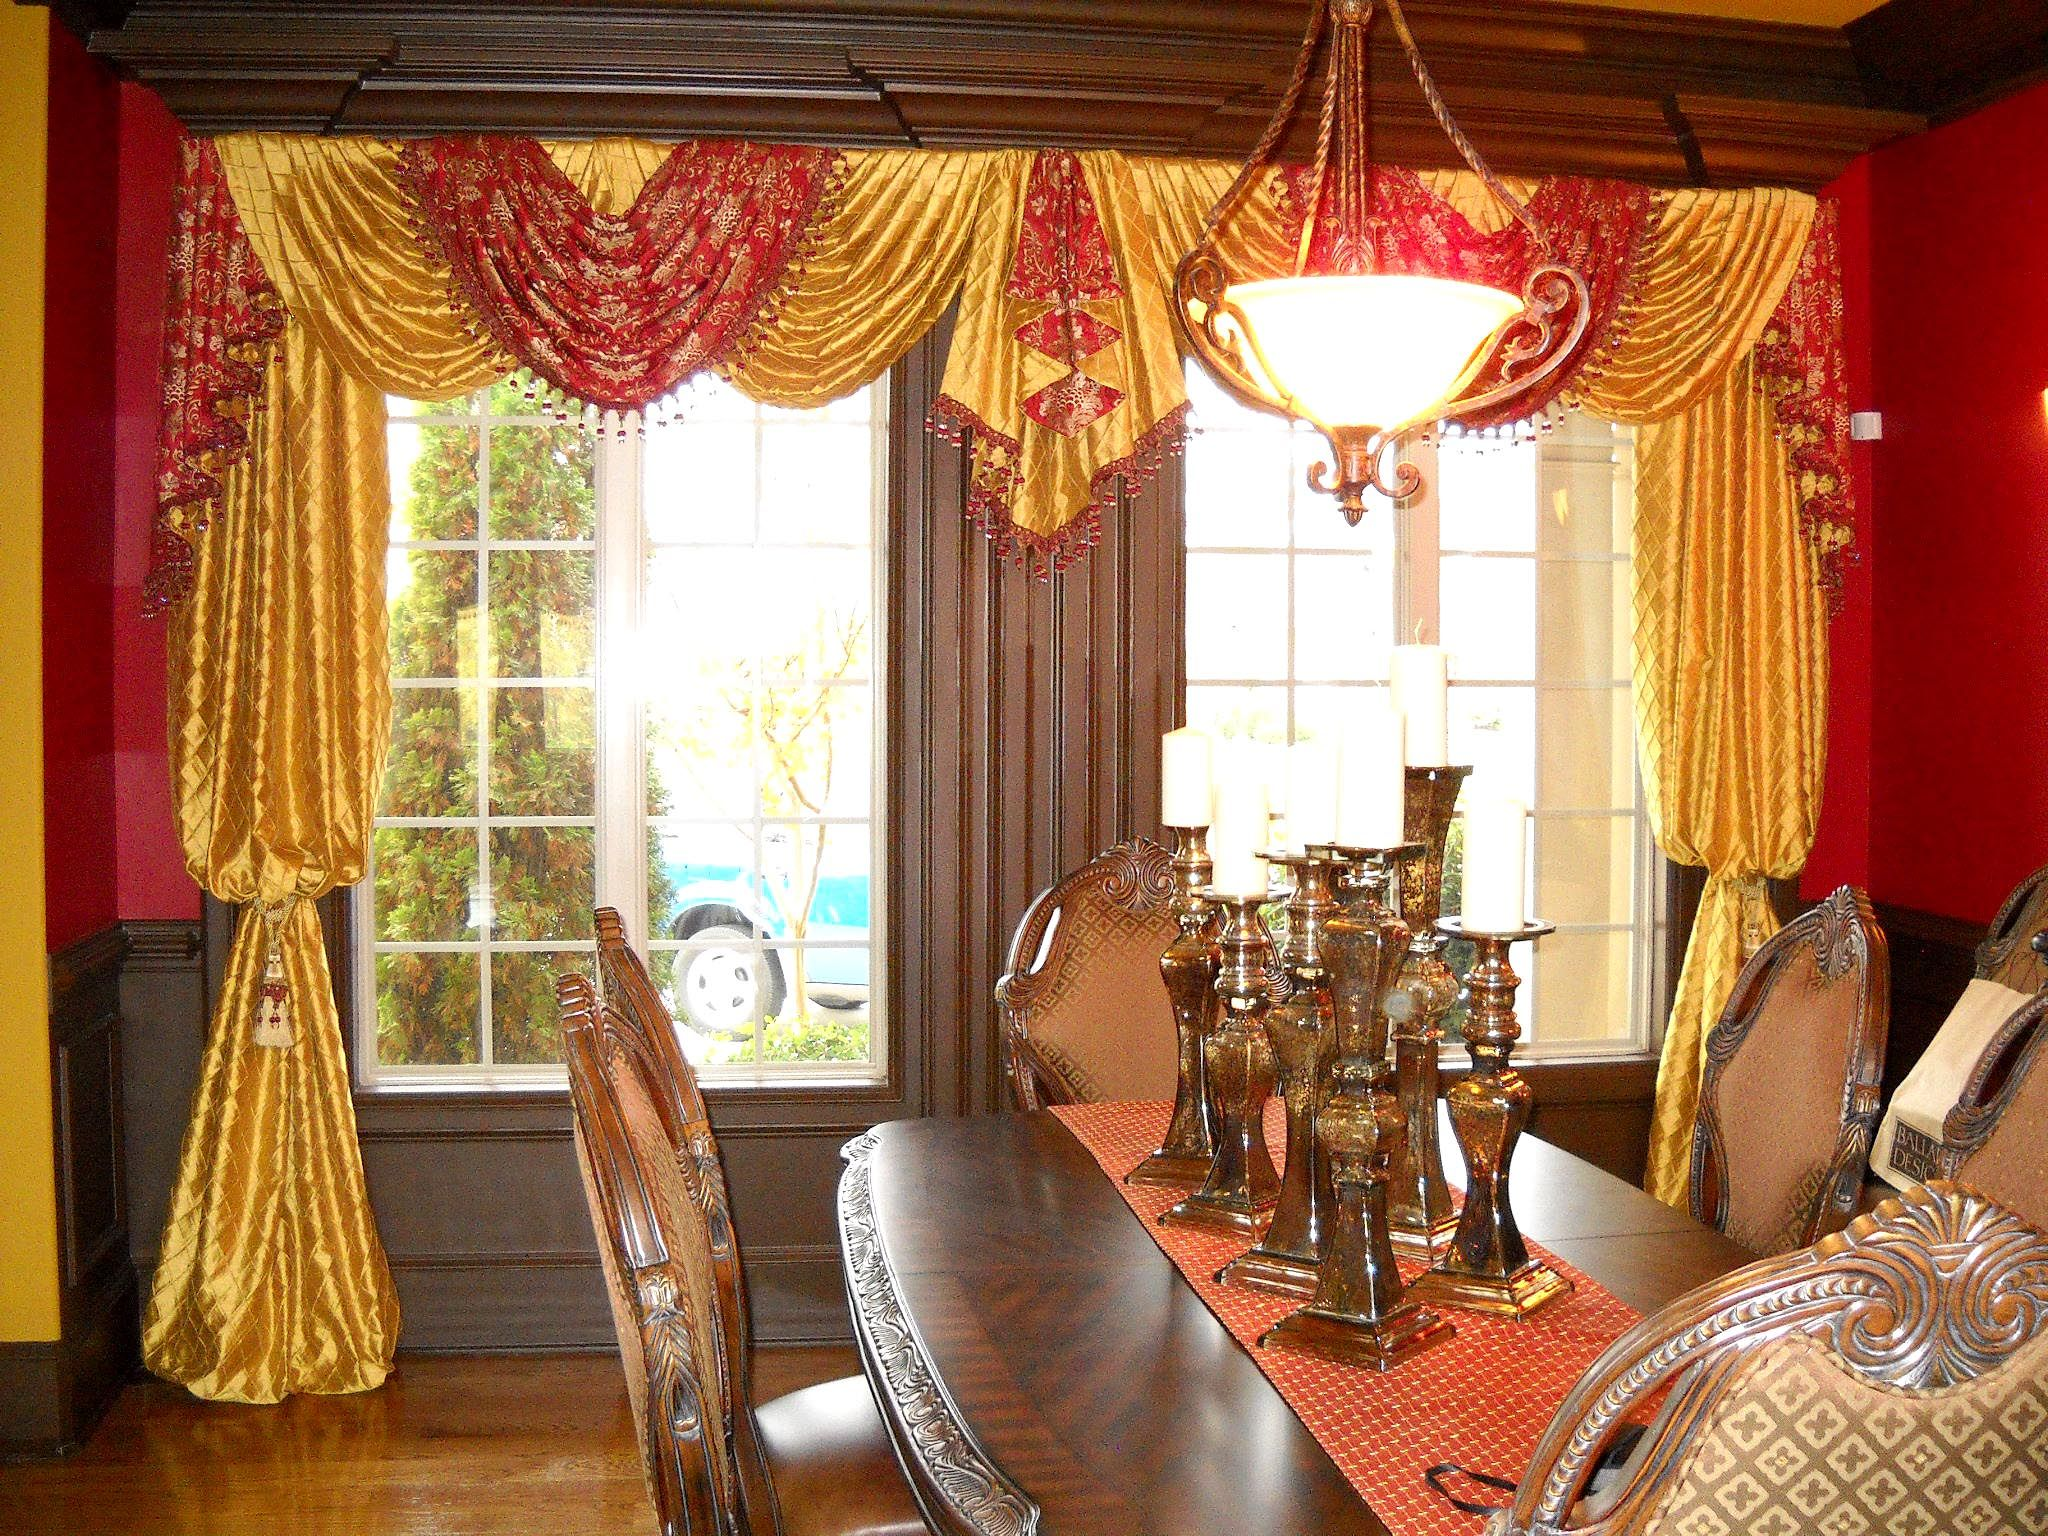 Windowtreatments Formal Dining Room With Red Gold Swags And Bishop Sleeves Www Lady Charming Dining Room Dining Room Window Treatments Formal Dining Room